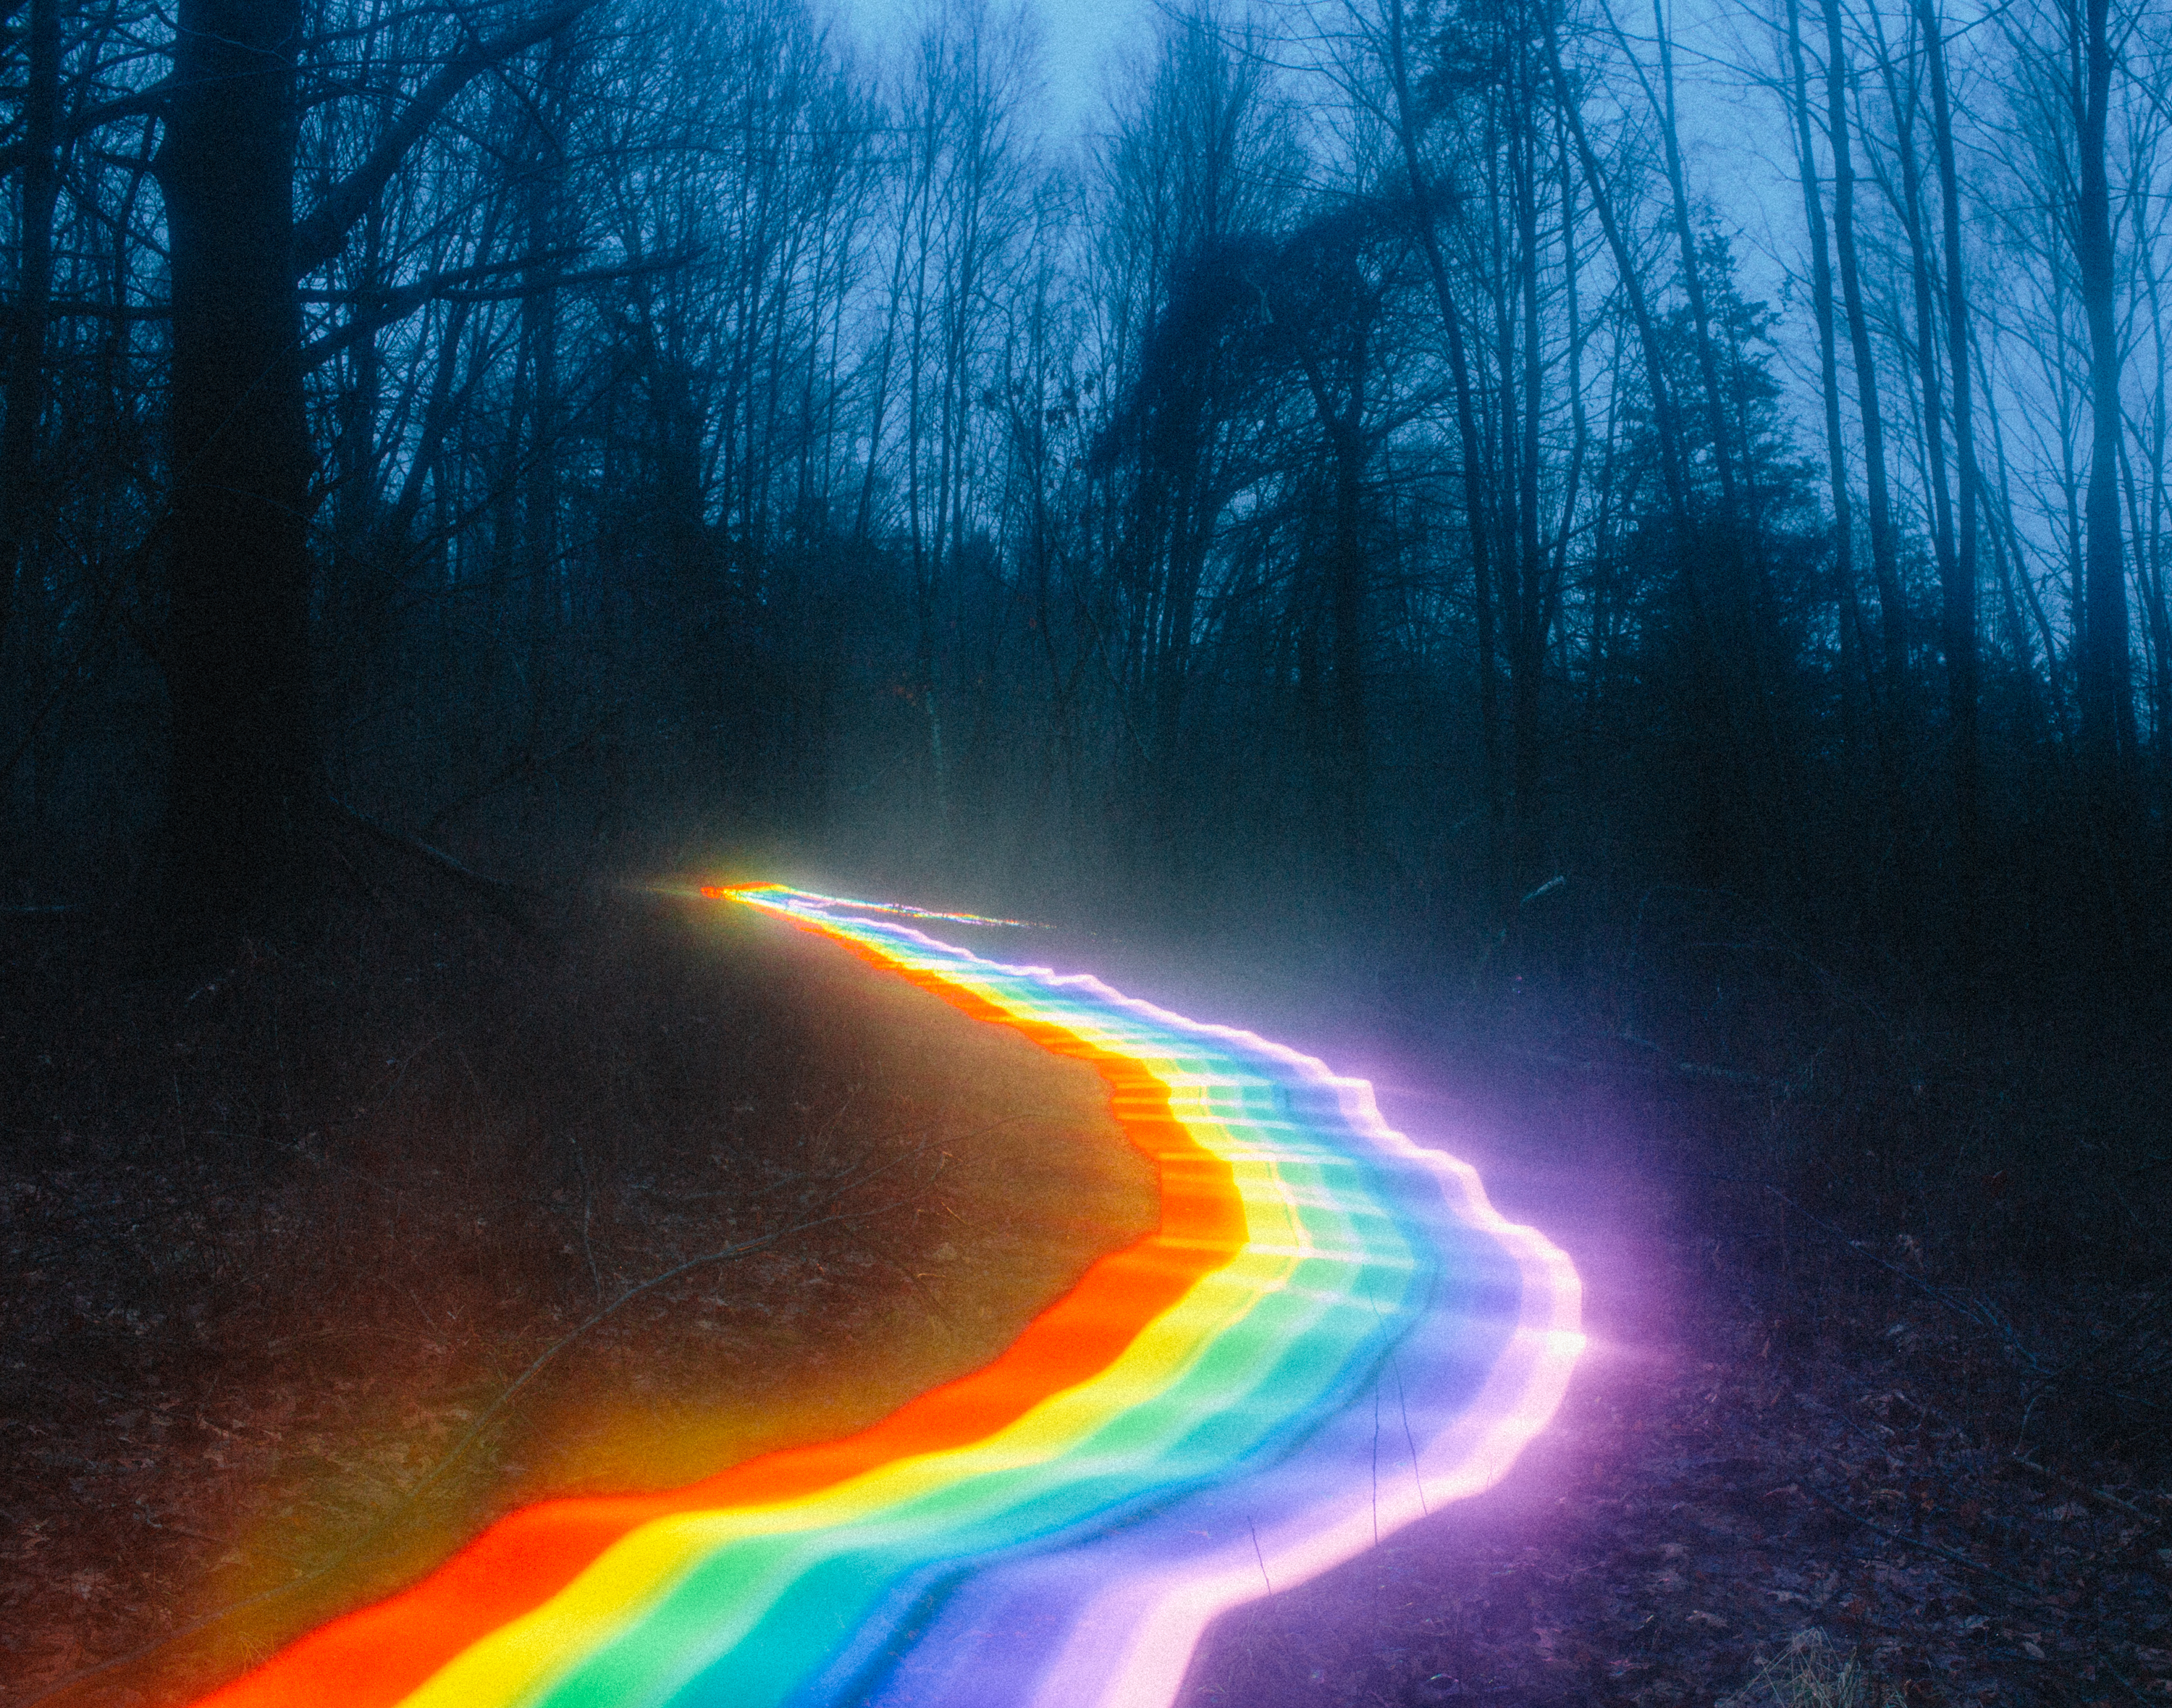 Magical Rainbow Roads